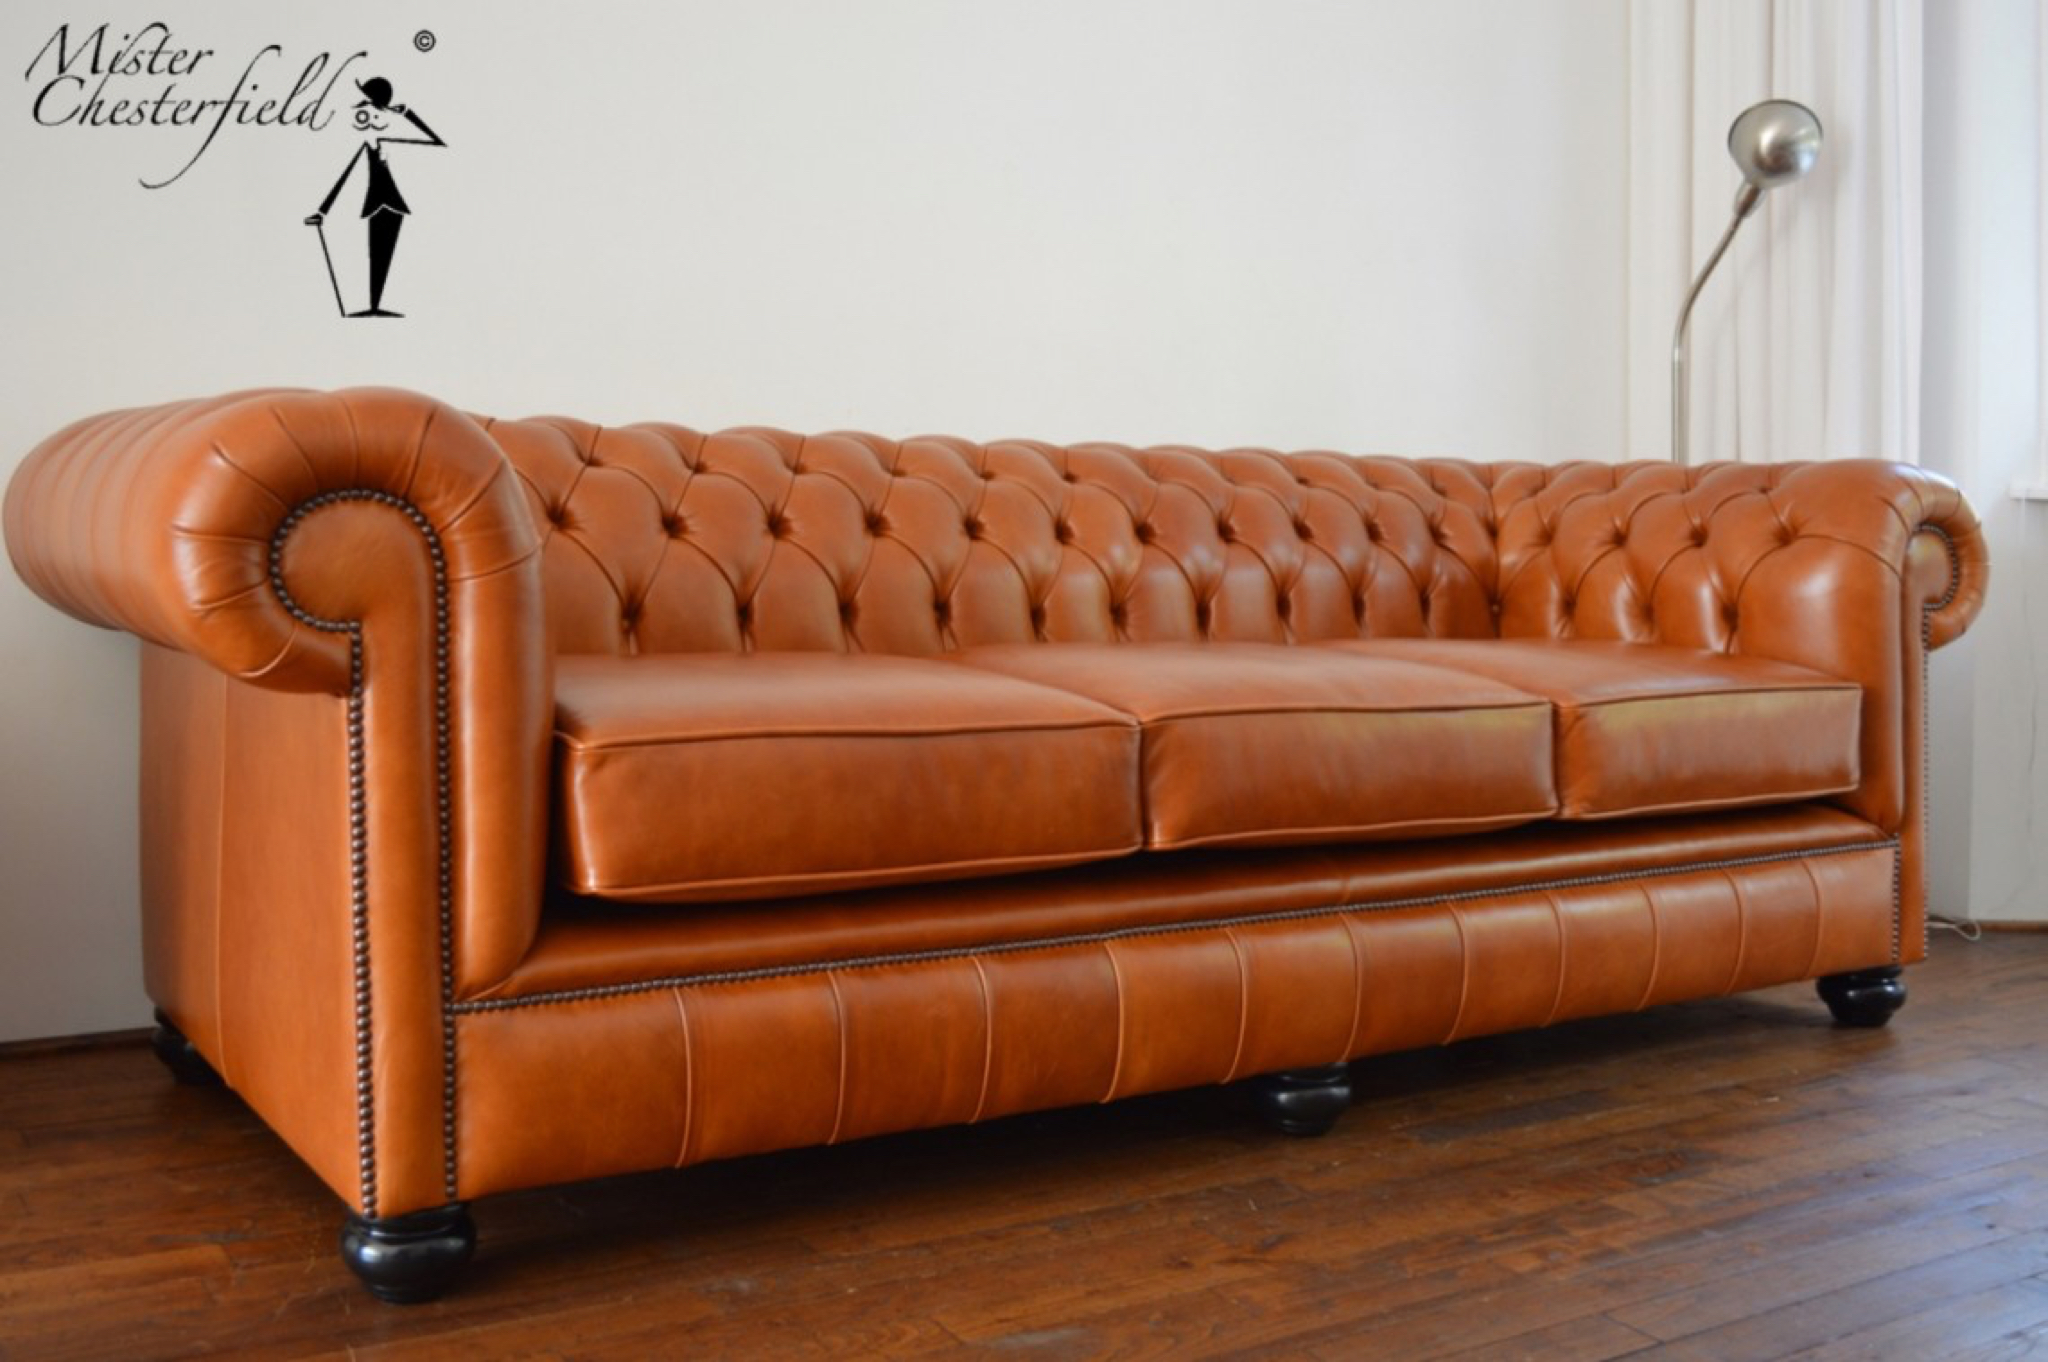 chesterfield-furniture-utrecht